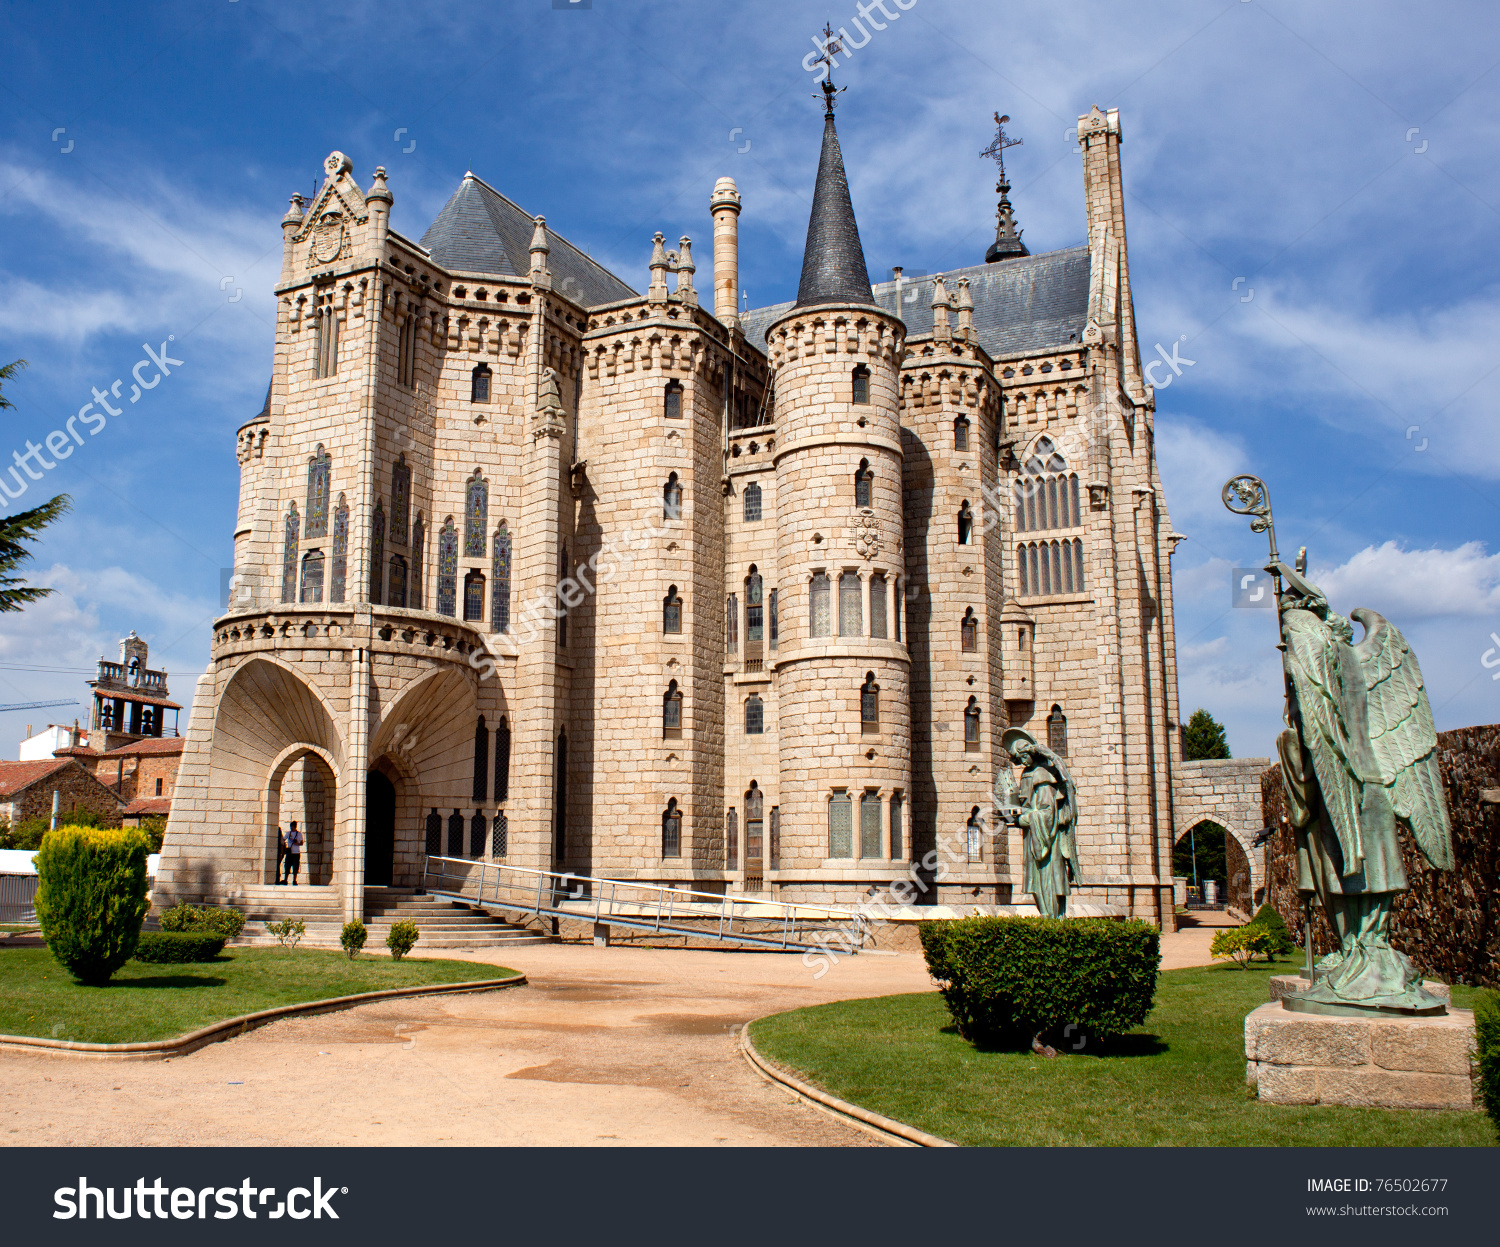 The Episcopal Palace, Modernisme Edifice In Astorga Stock Photo.